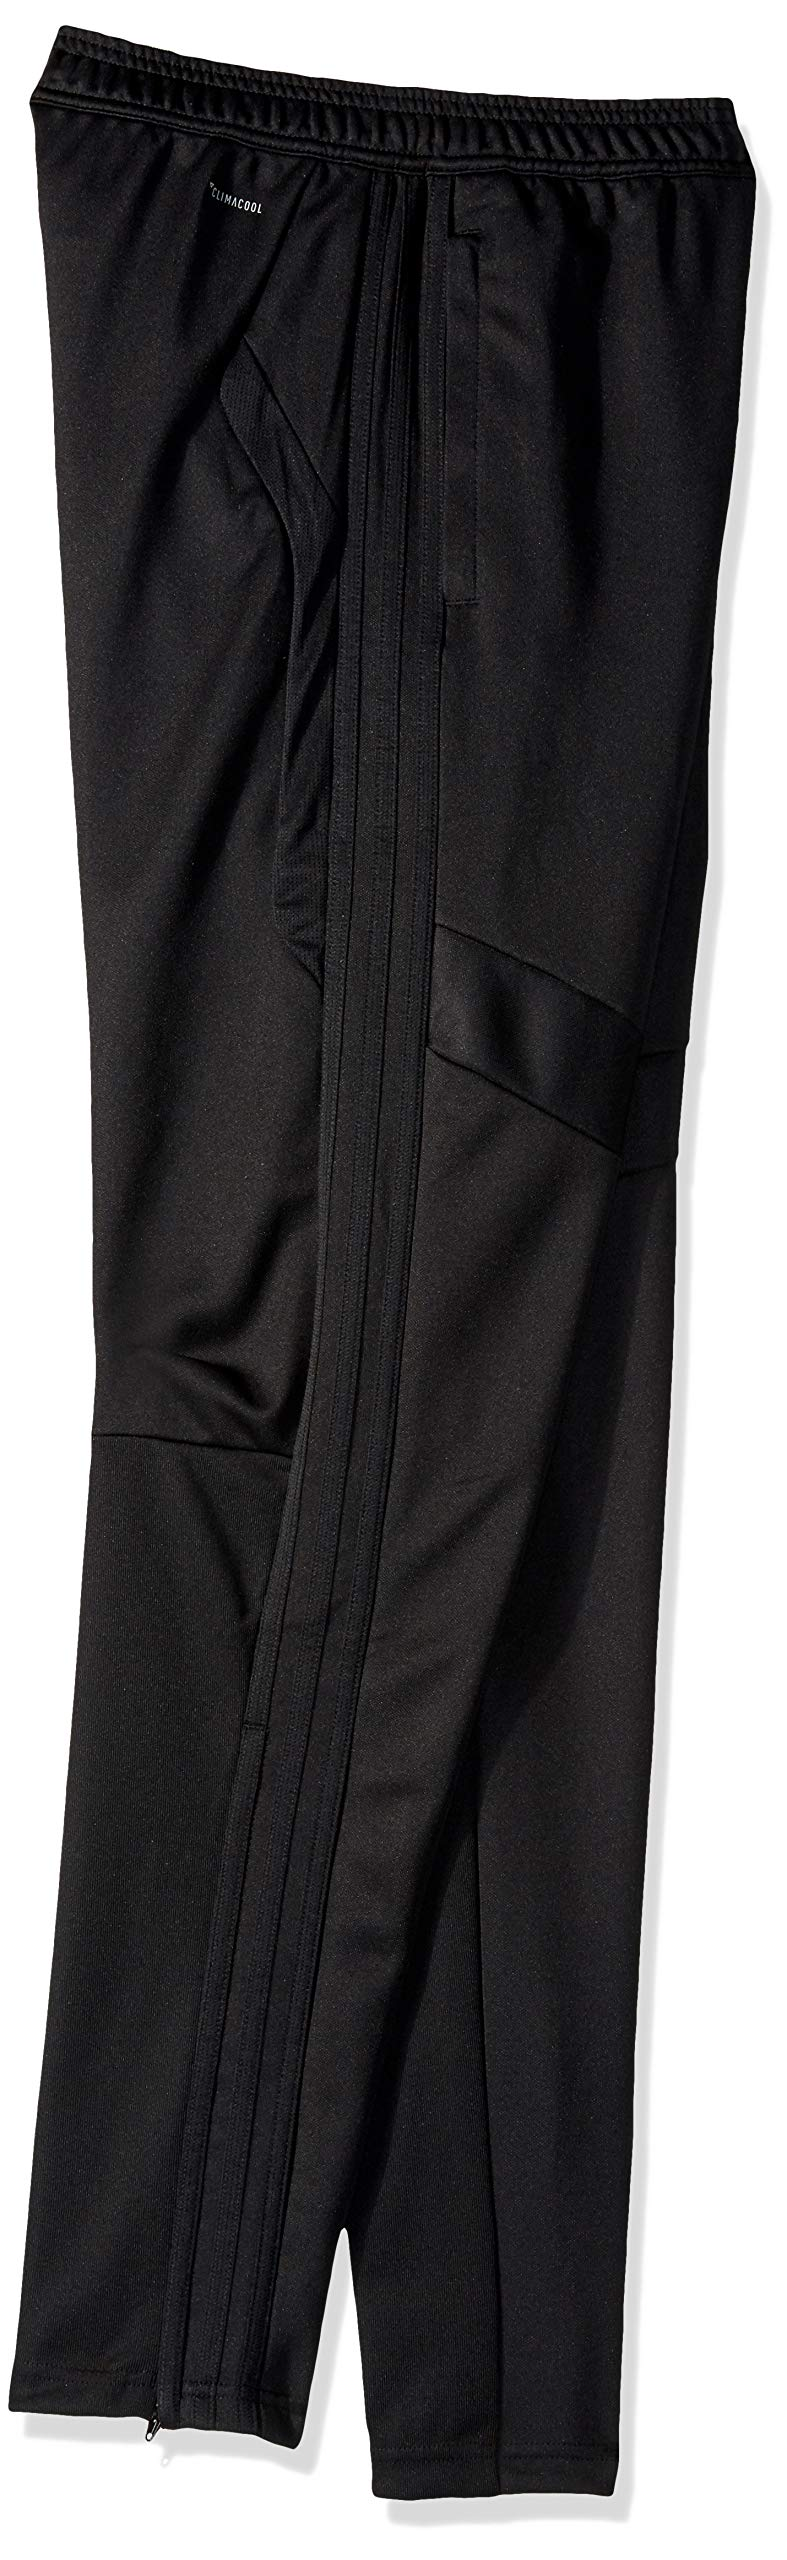 adidas Youth Tiro19 Youth Training Pants, Black, XX-Small by adidas (Image #2)